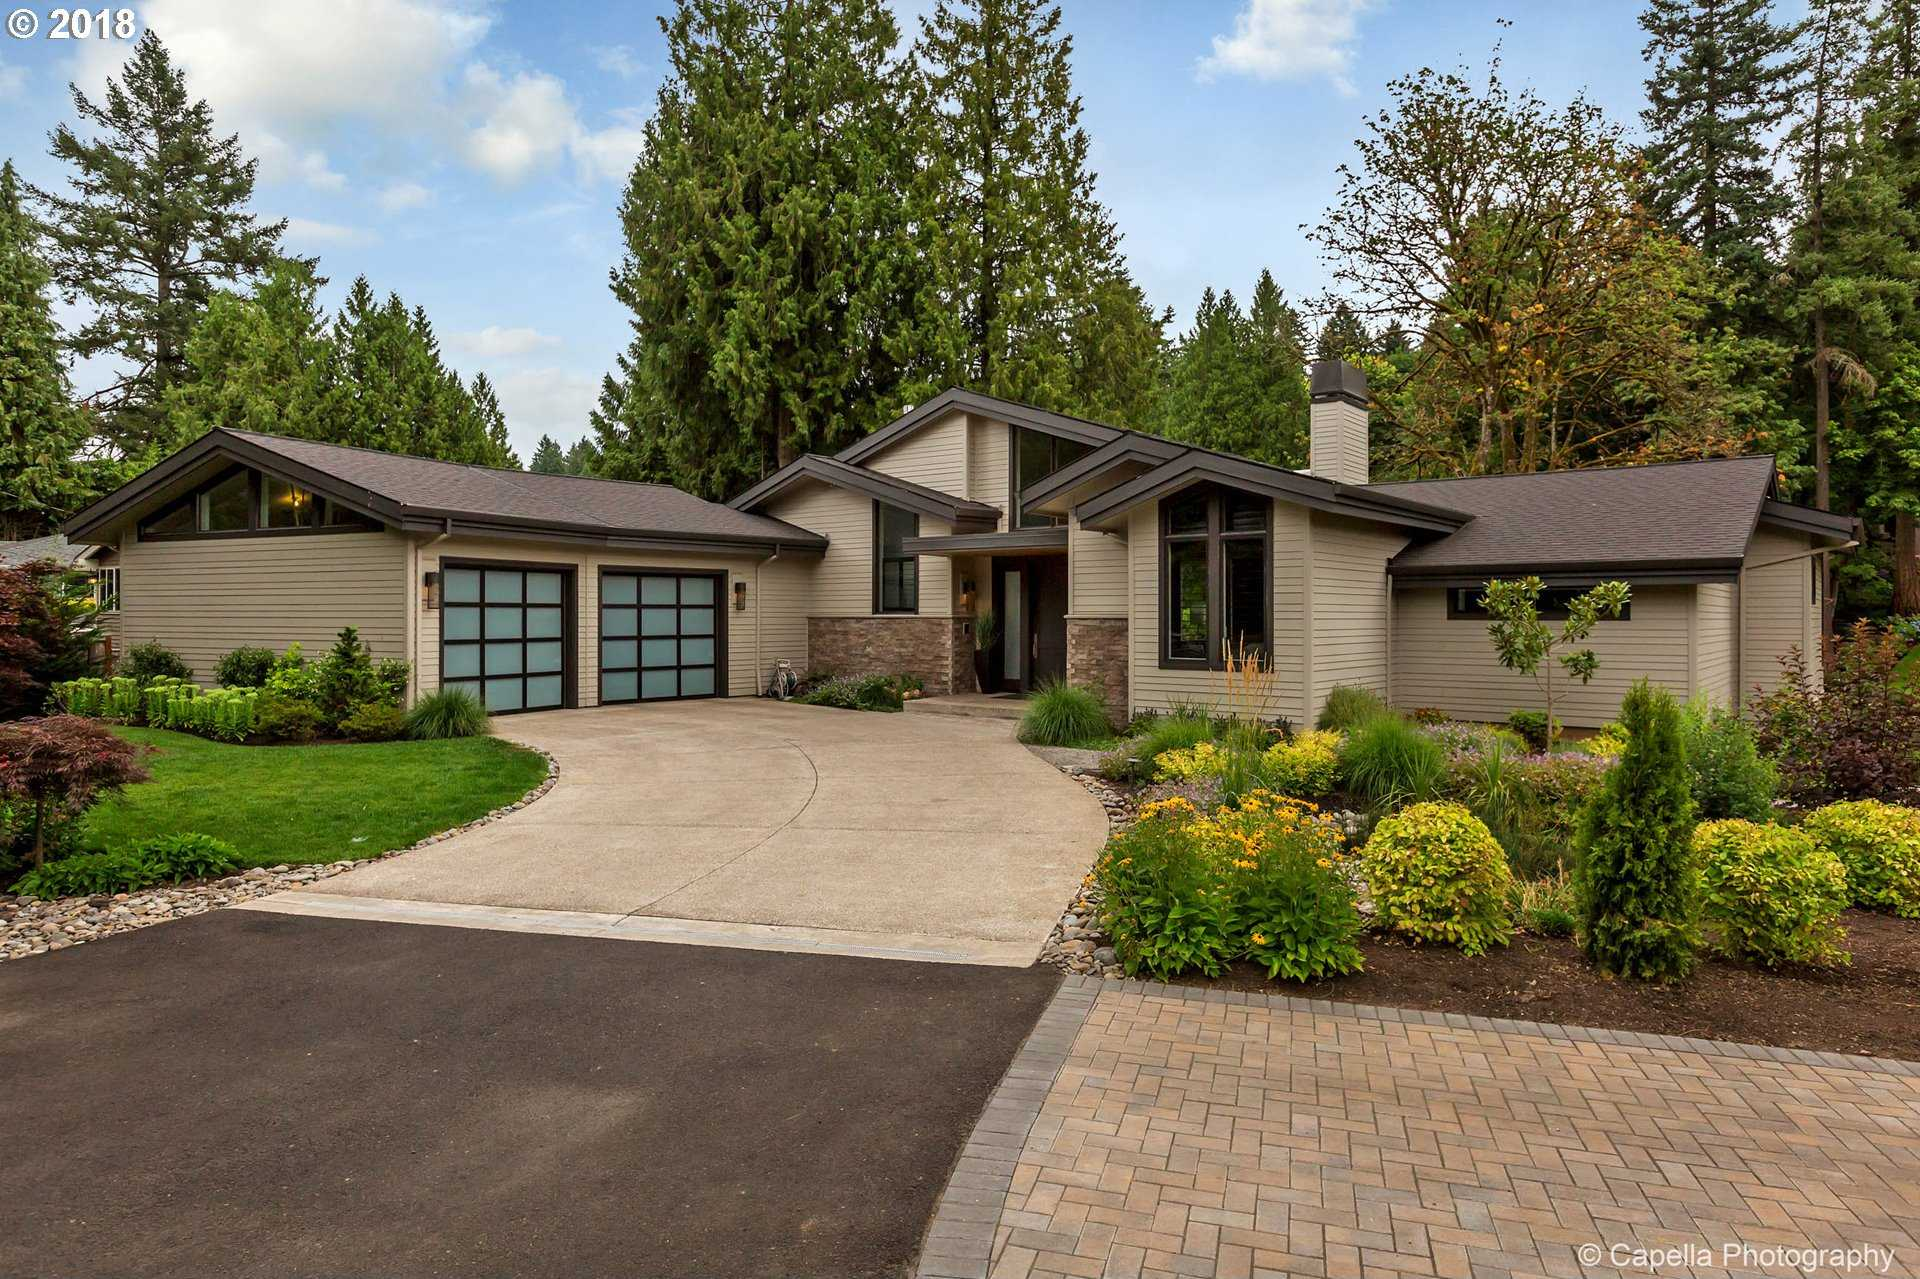 $2,825,000 - 4Br/4Ba -  for Sale in Lake Oswego